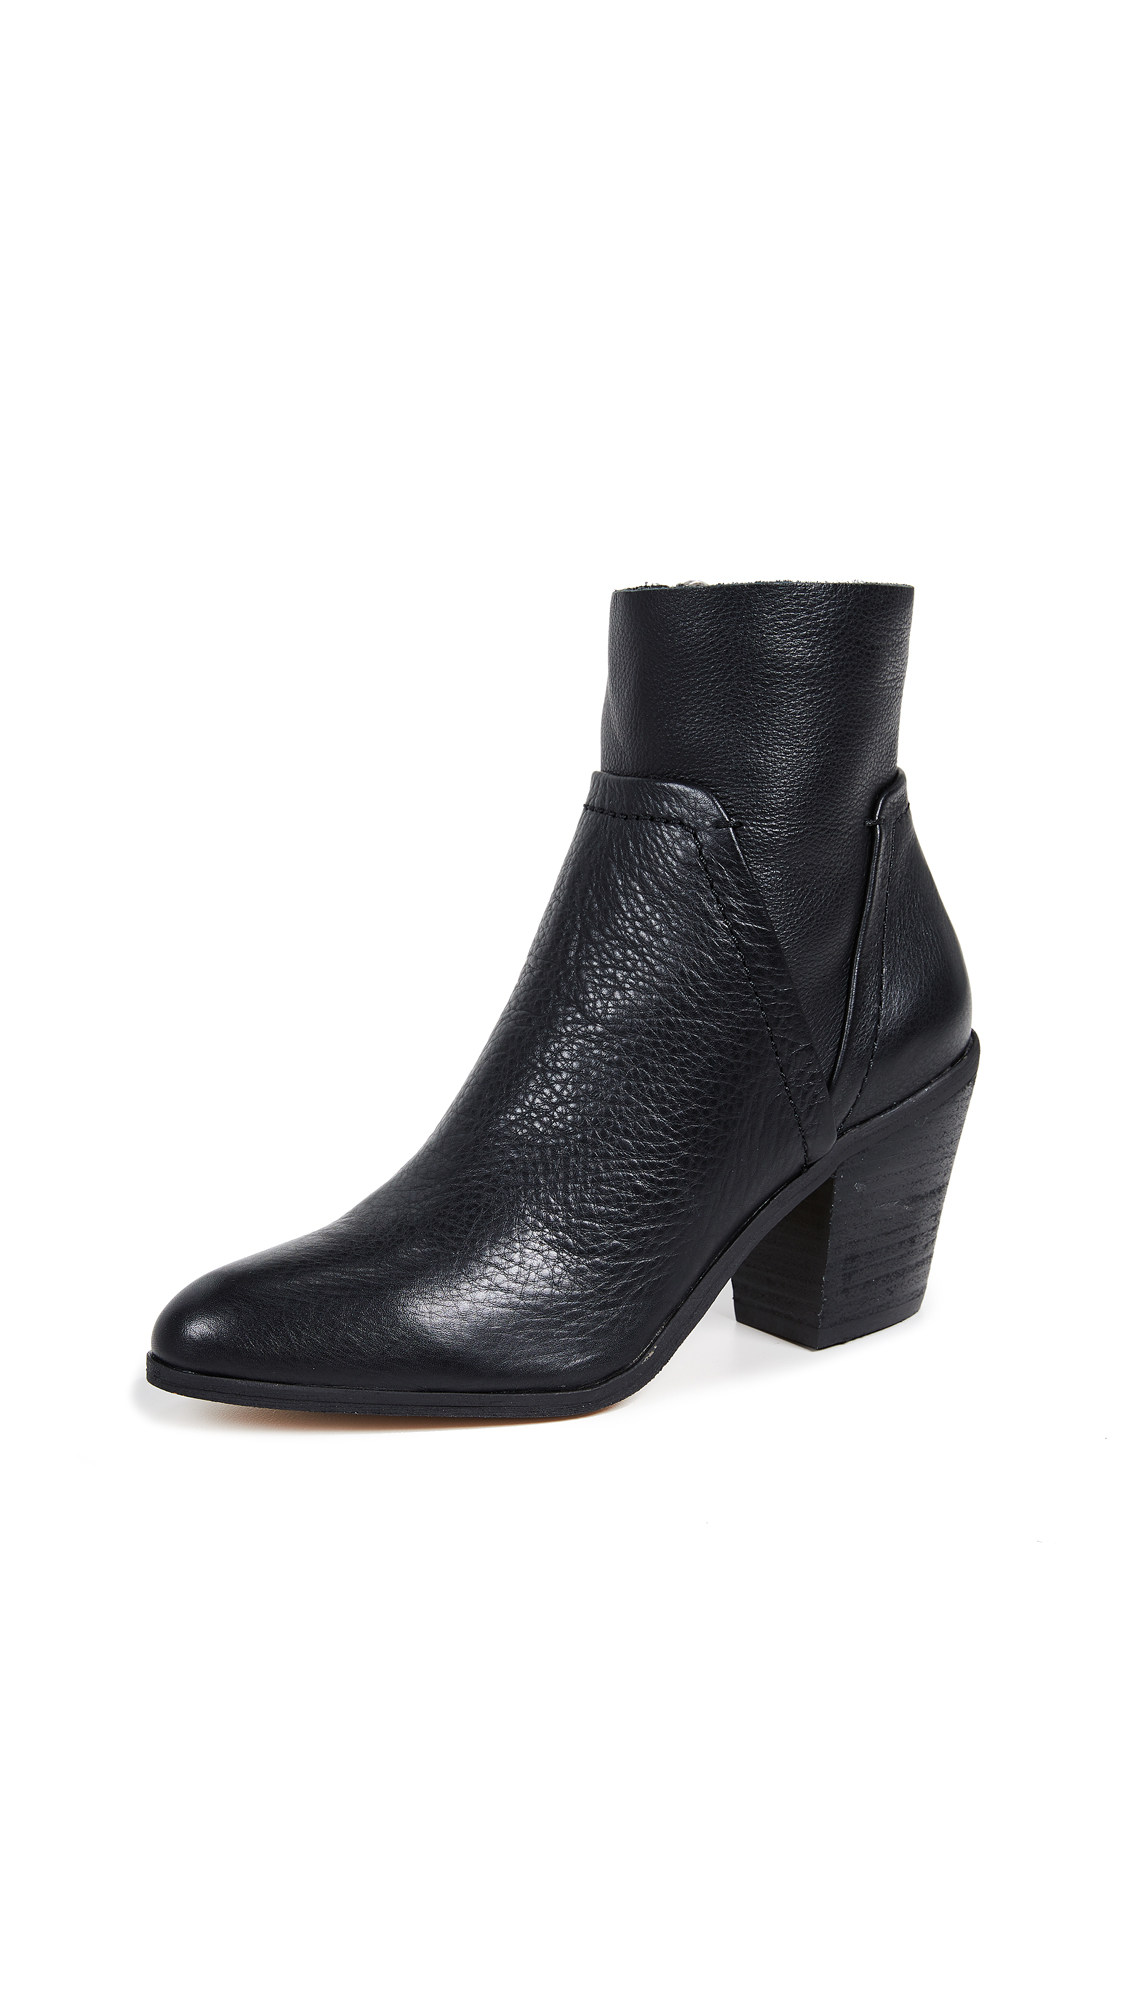 Splendid Cherie Block Heel Booties - Black